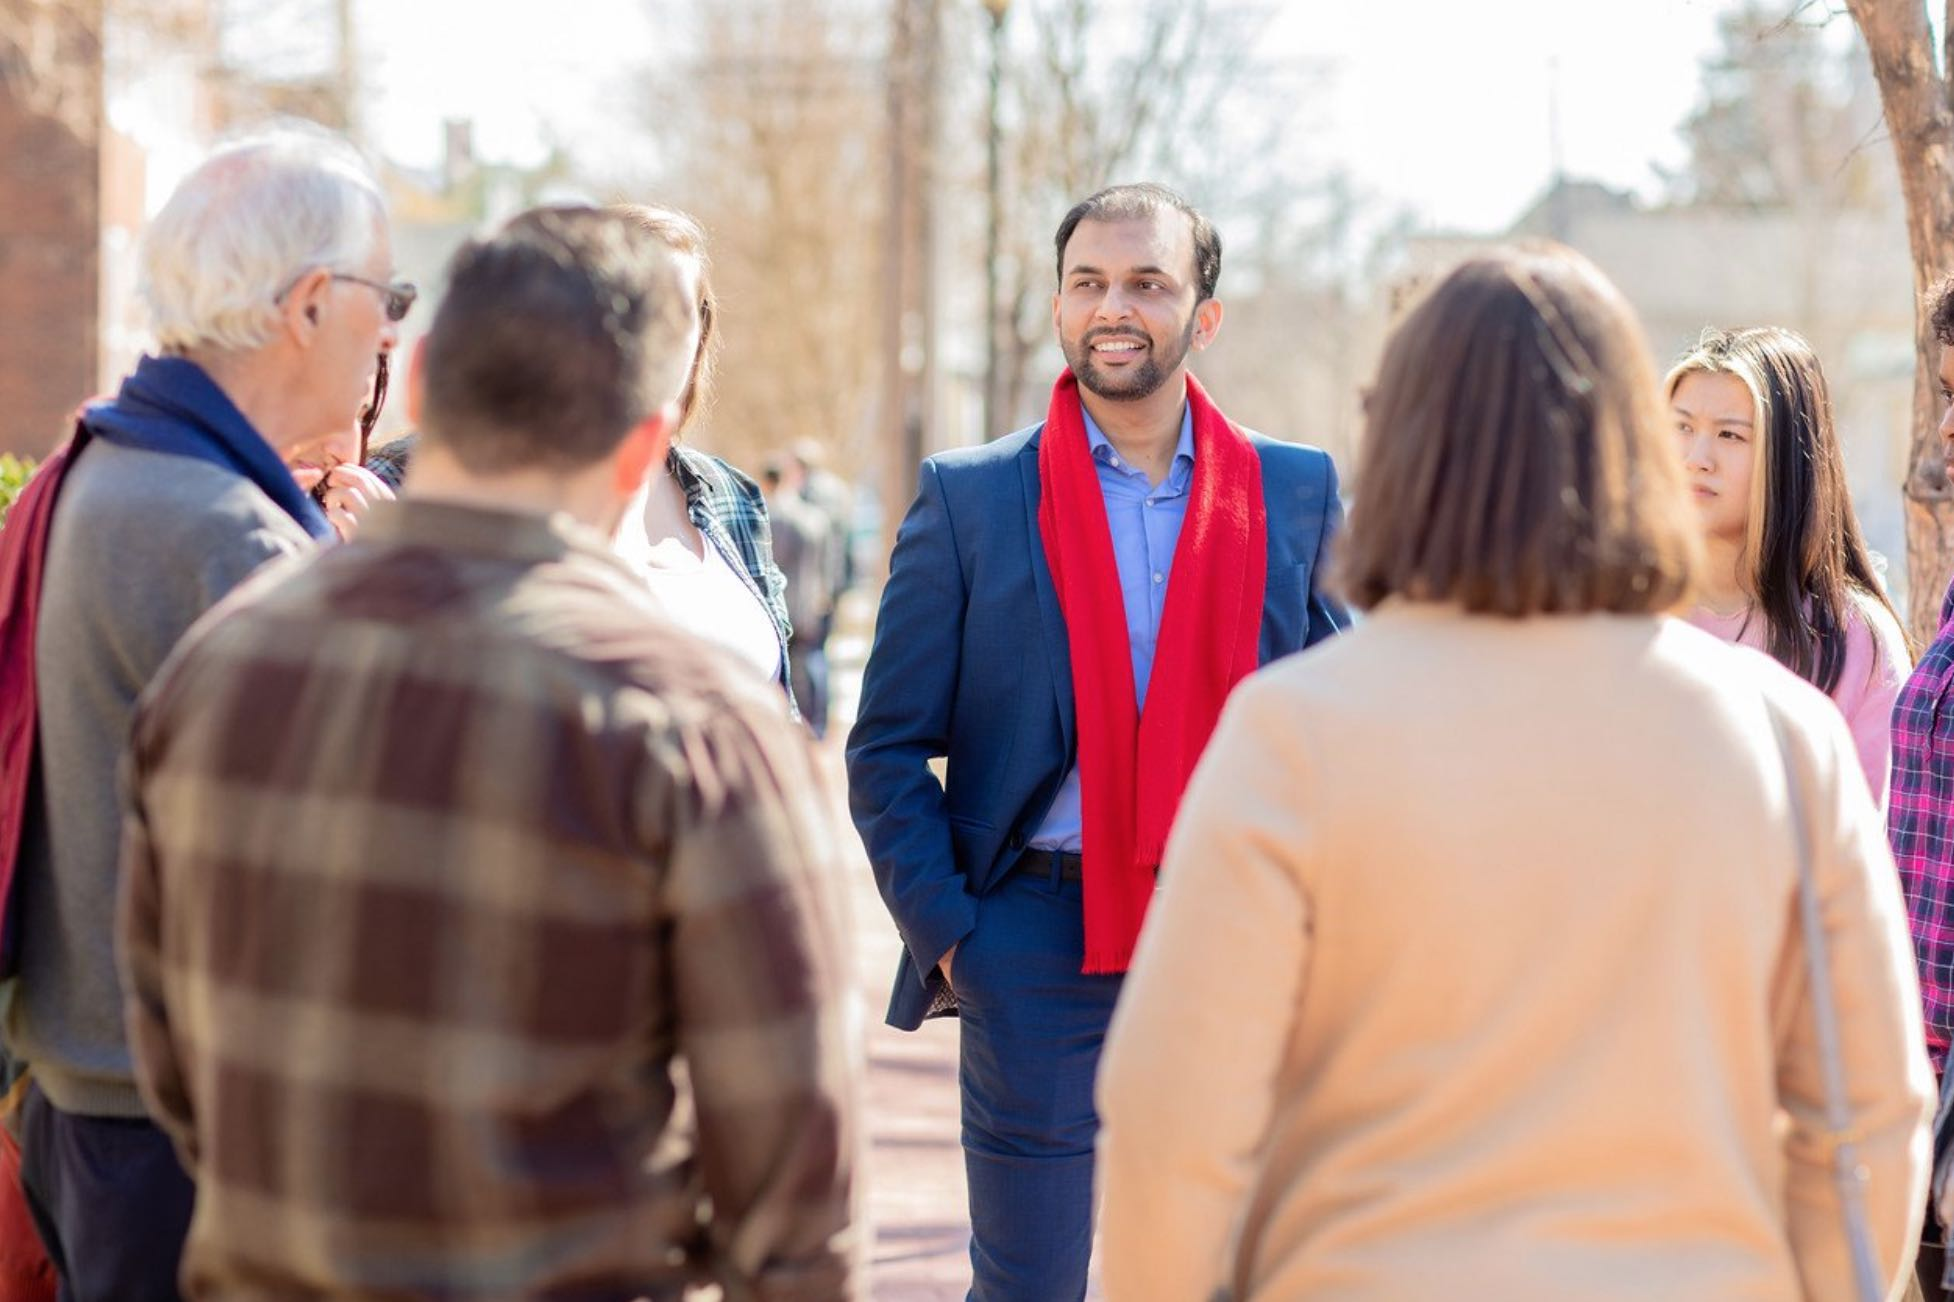 Qasim Rashid is a congressional candidate in Virginia. He sees attacks on himself as an opportunity to open up a dialogue with people.